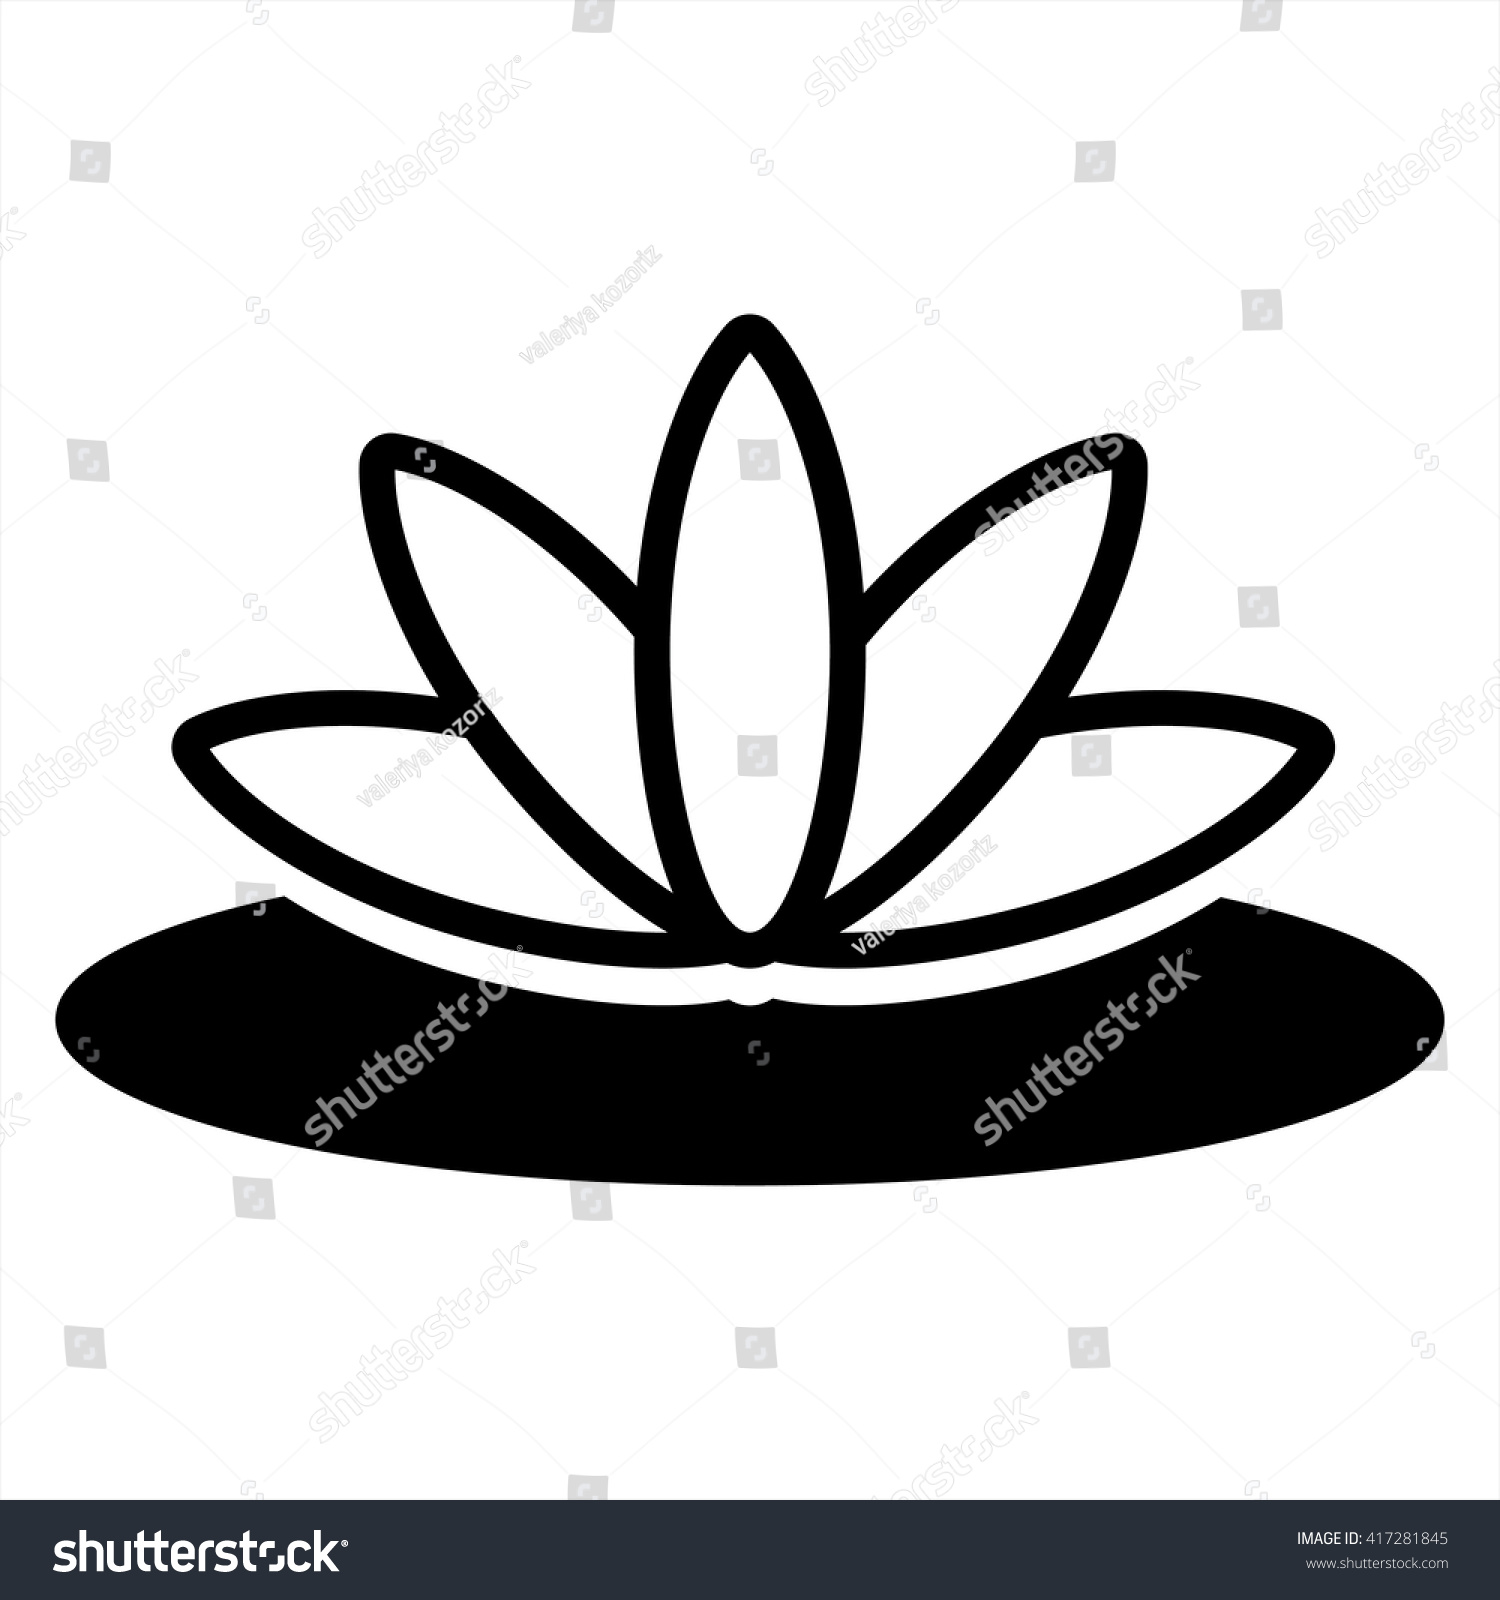 Royalty free lotus flower spa asia icon 417281845 stock photo lotus flower spa asia icon 417281845 izmirmasajfo